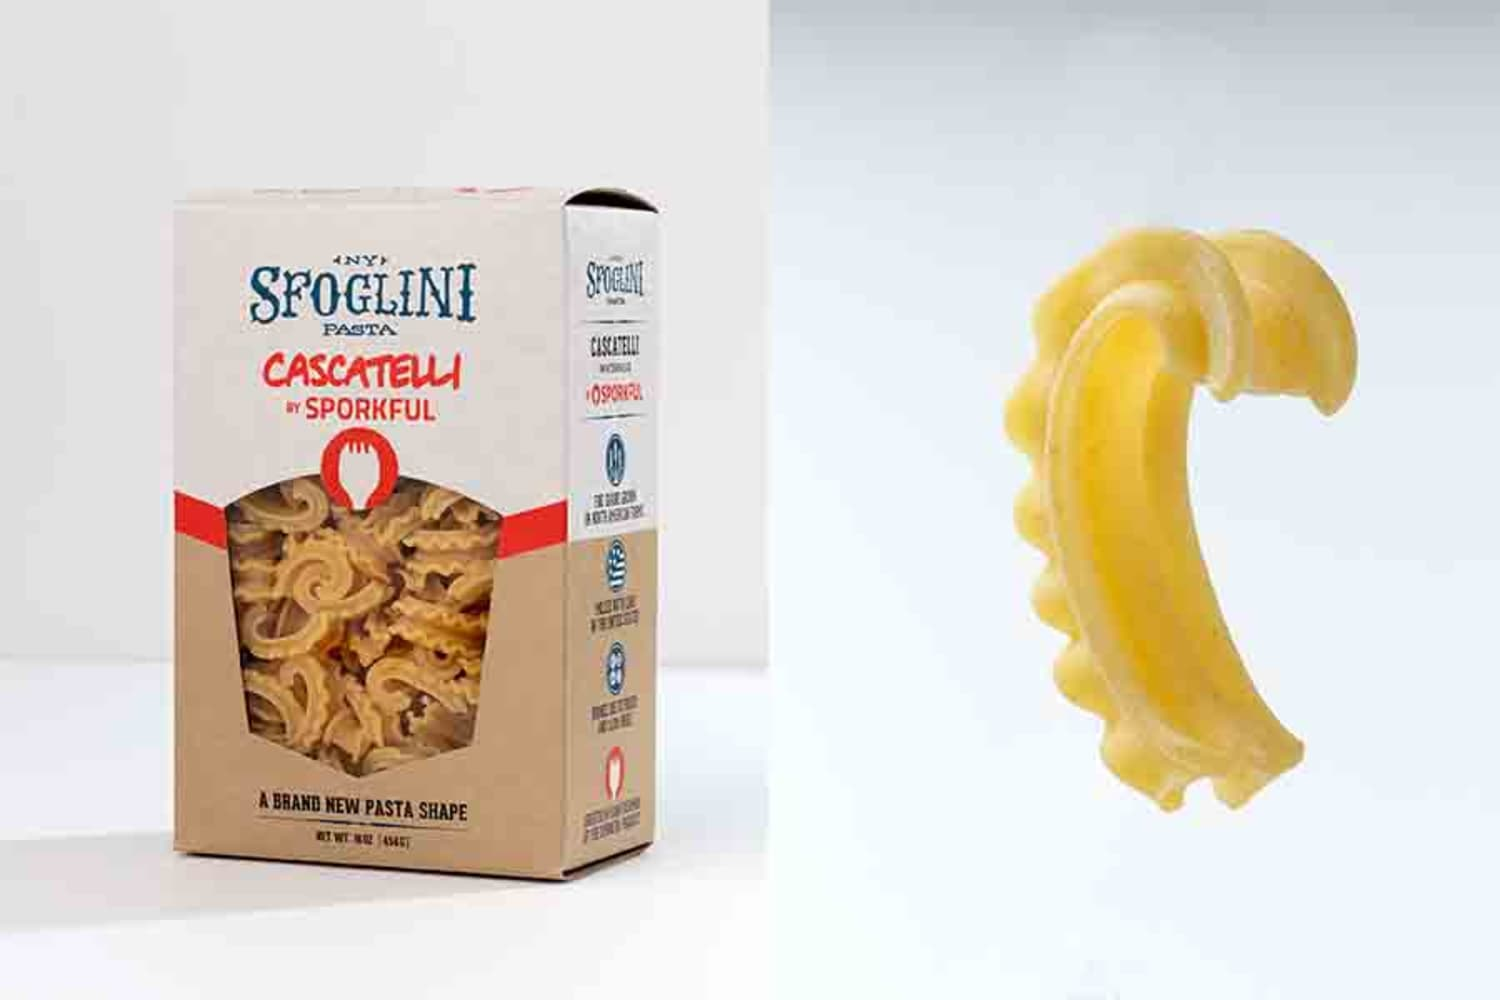 This New Pasta Shape Took 3 Years to Make (Here's Why It's So Great)